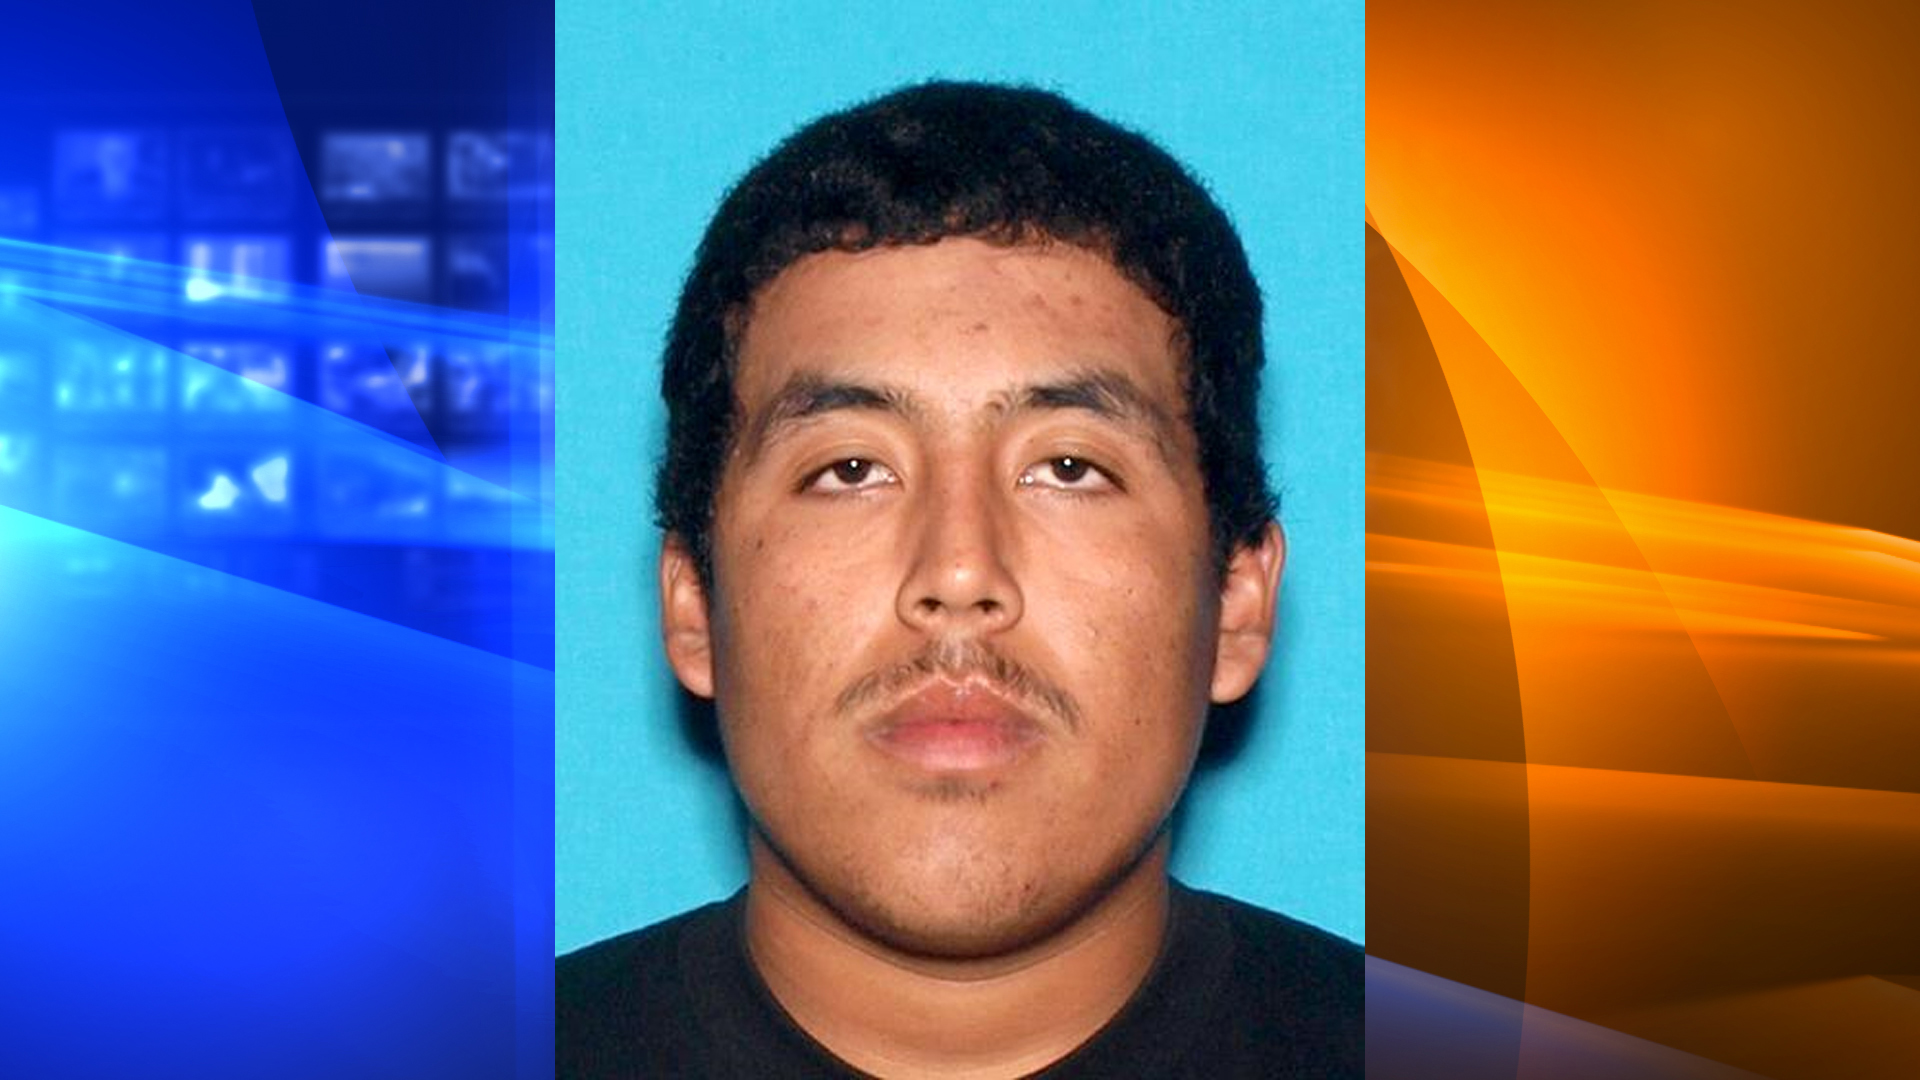 Nicholas Hernandez, 20, of Rialto, pictured in a photo released by the Fontana Police Department on March 14, 2019.